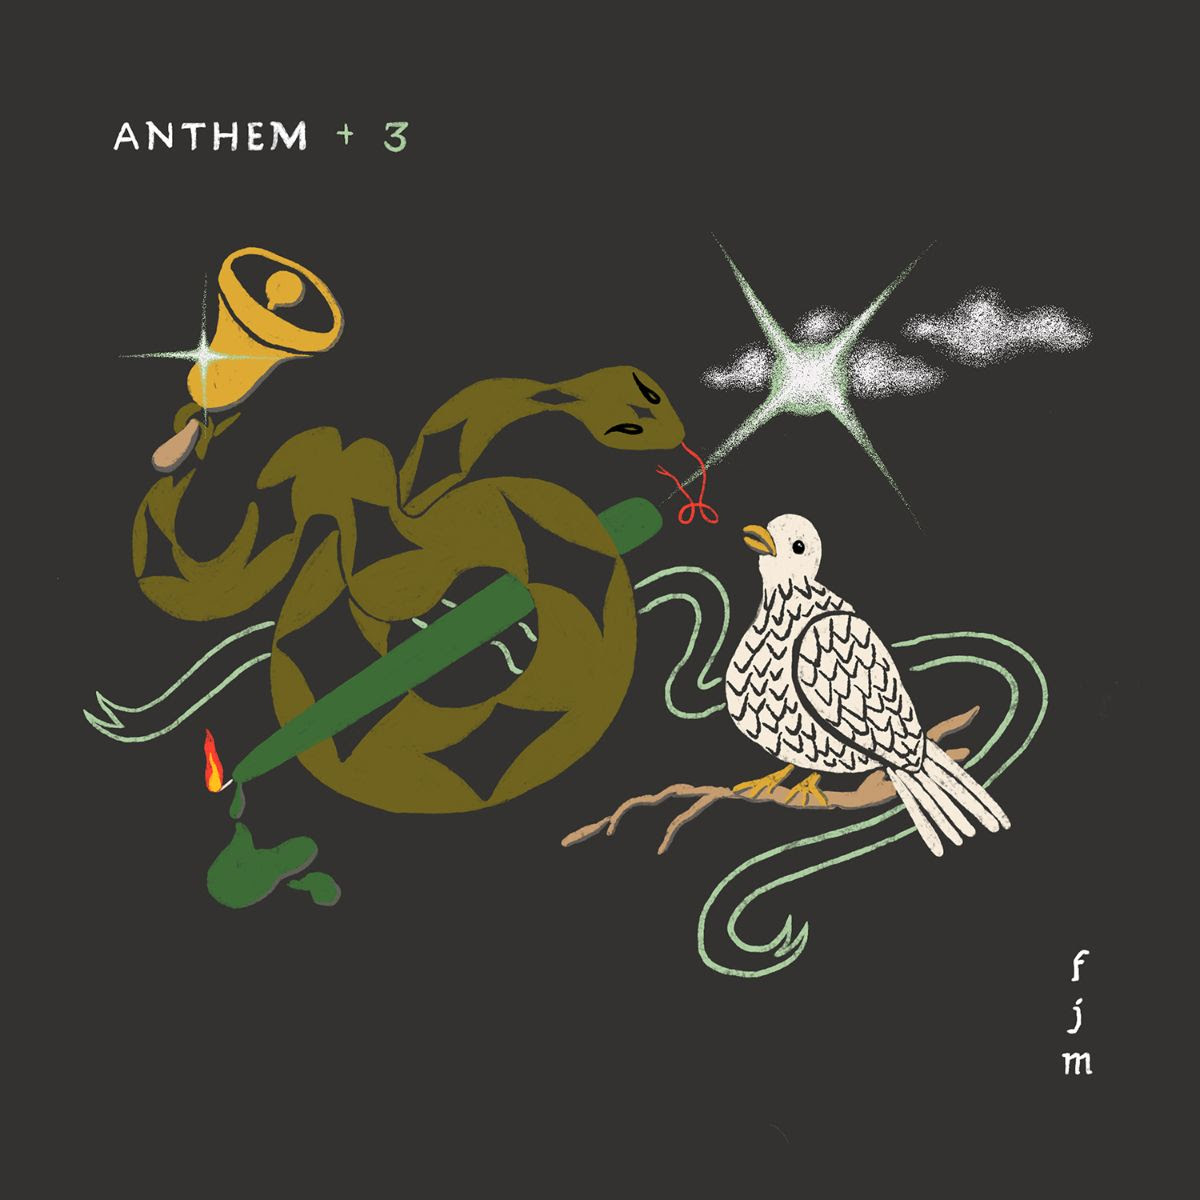 Father John Misty is releasing Anthem +3 is a digital EP featuring covers of Leonard Cohen, Yusuf/Cat Stevens, and Link Wray, that will be available July 3